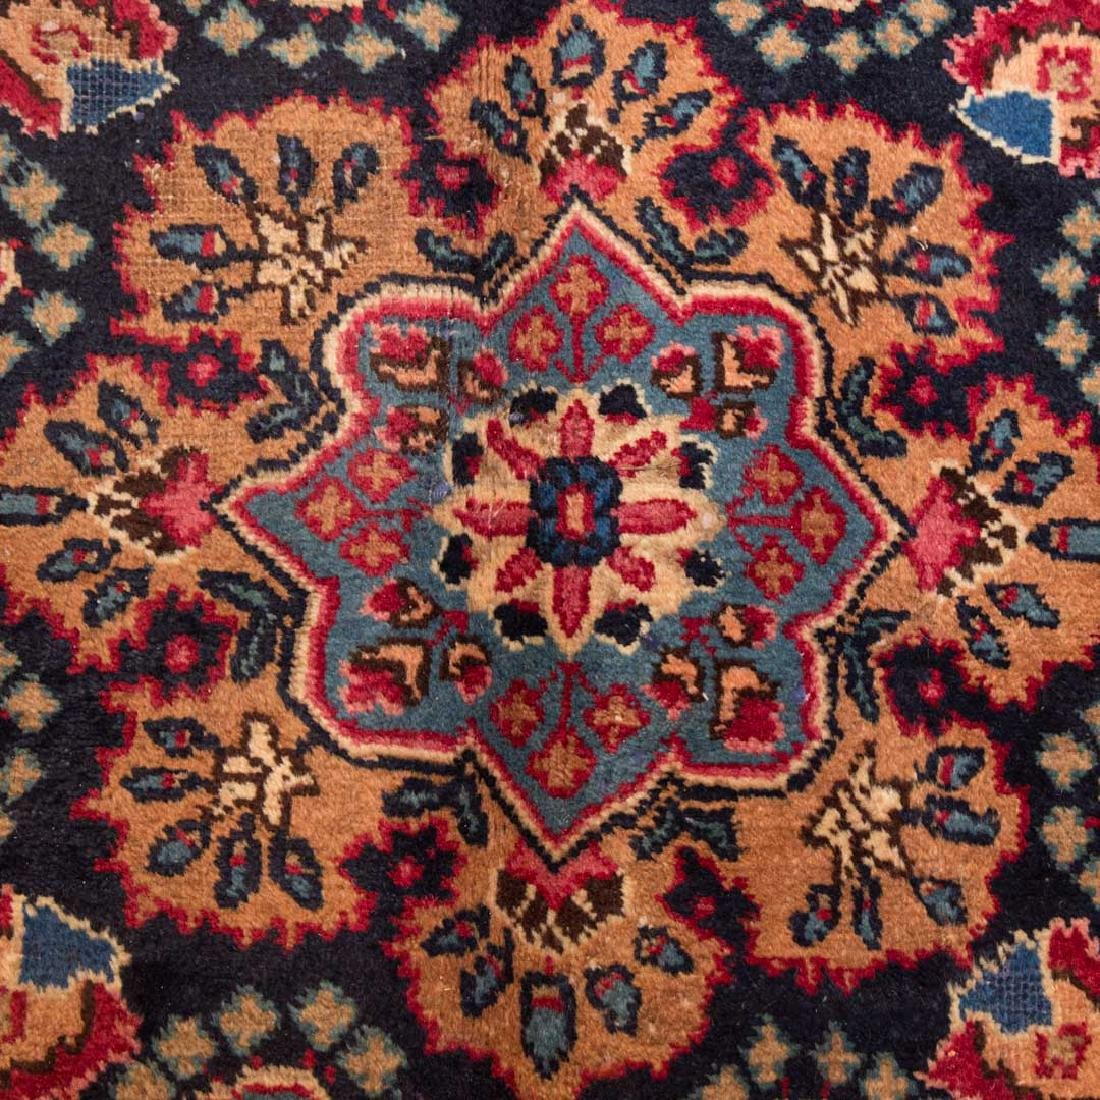 Persian Meshed rug, approx. 8.1 x 11 - 4